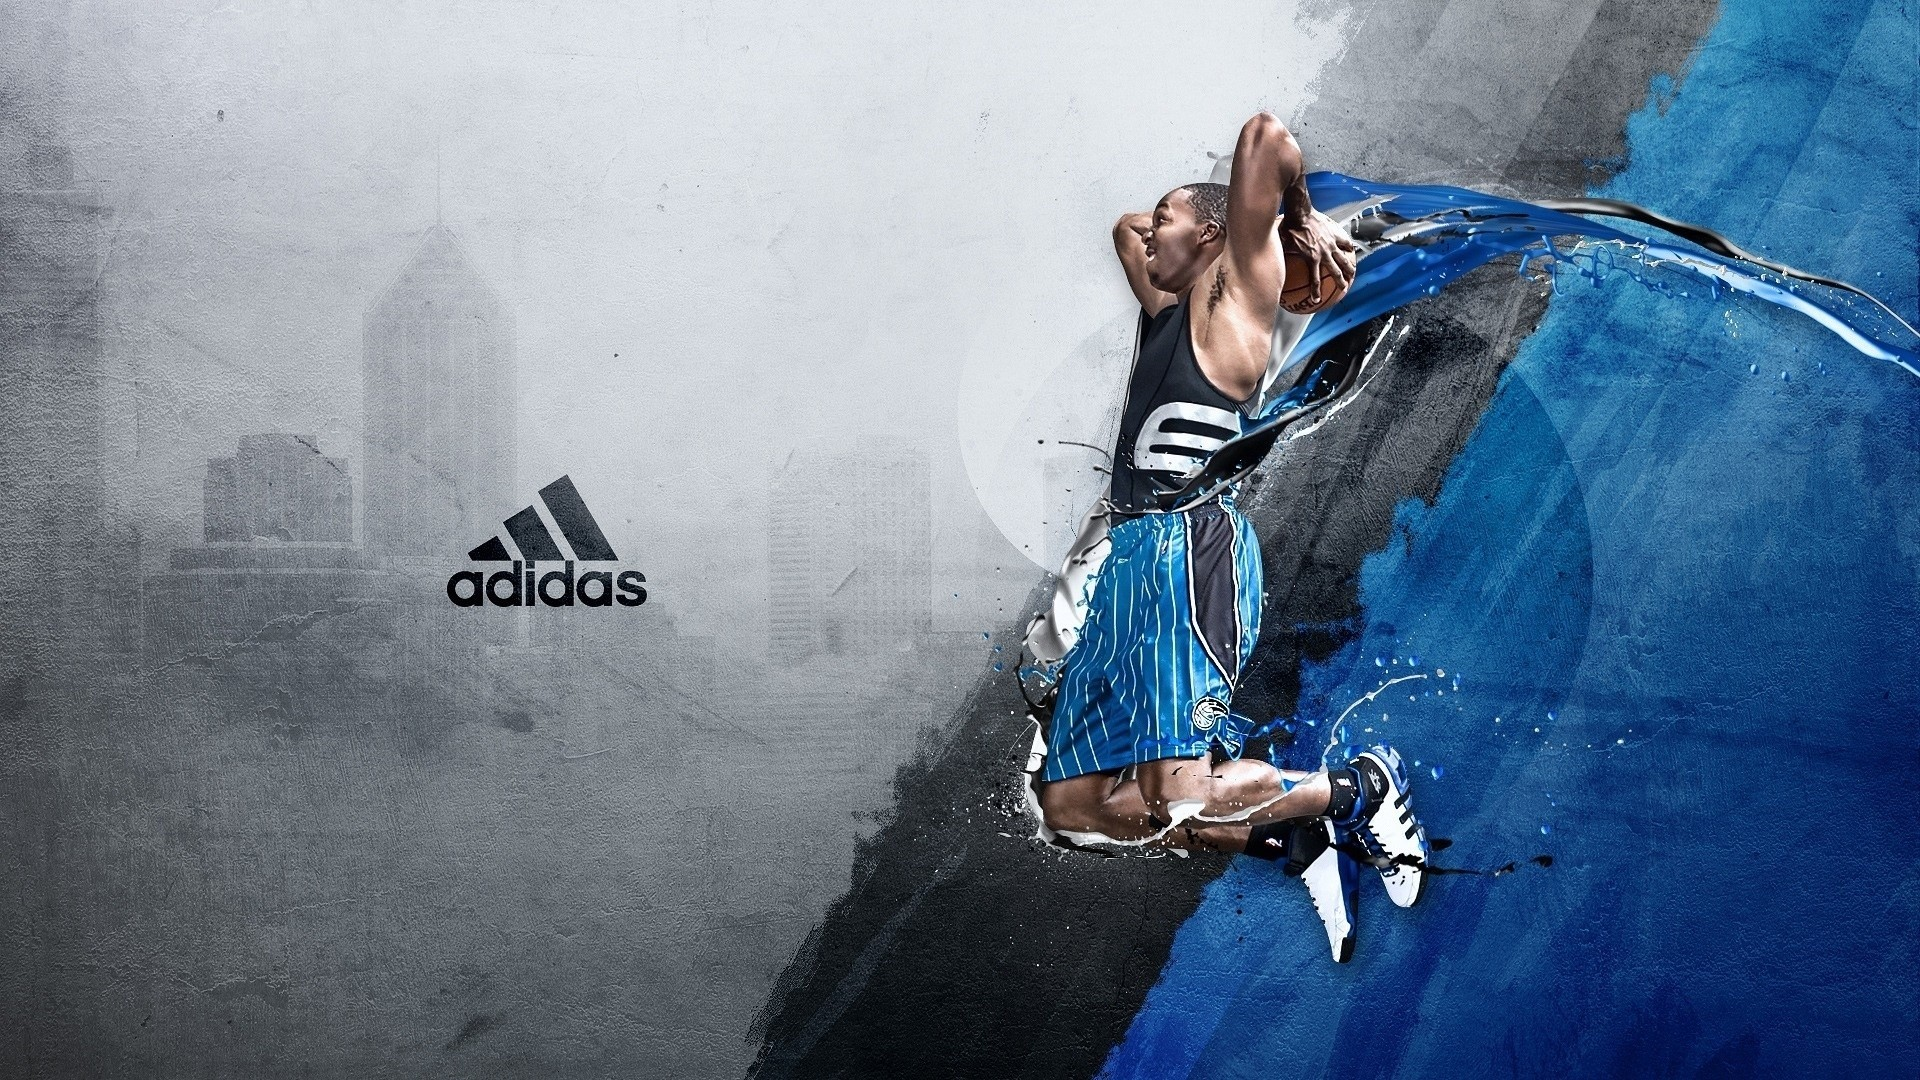 Wallpaper Adidas NBA basketball